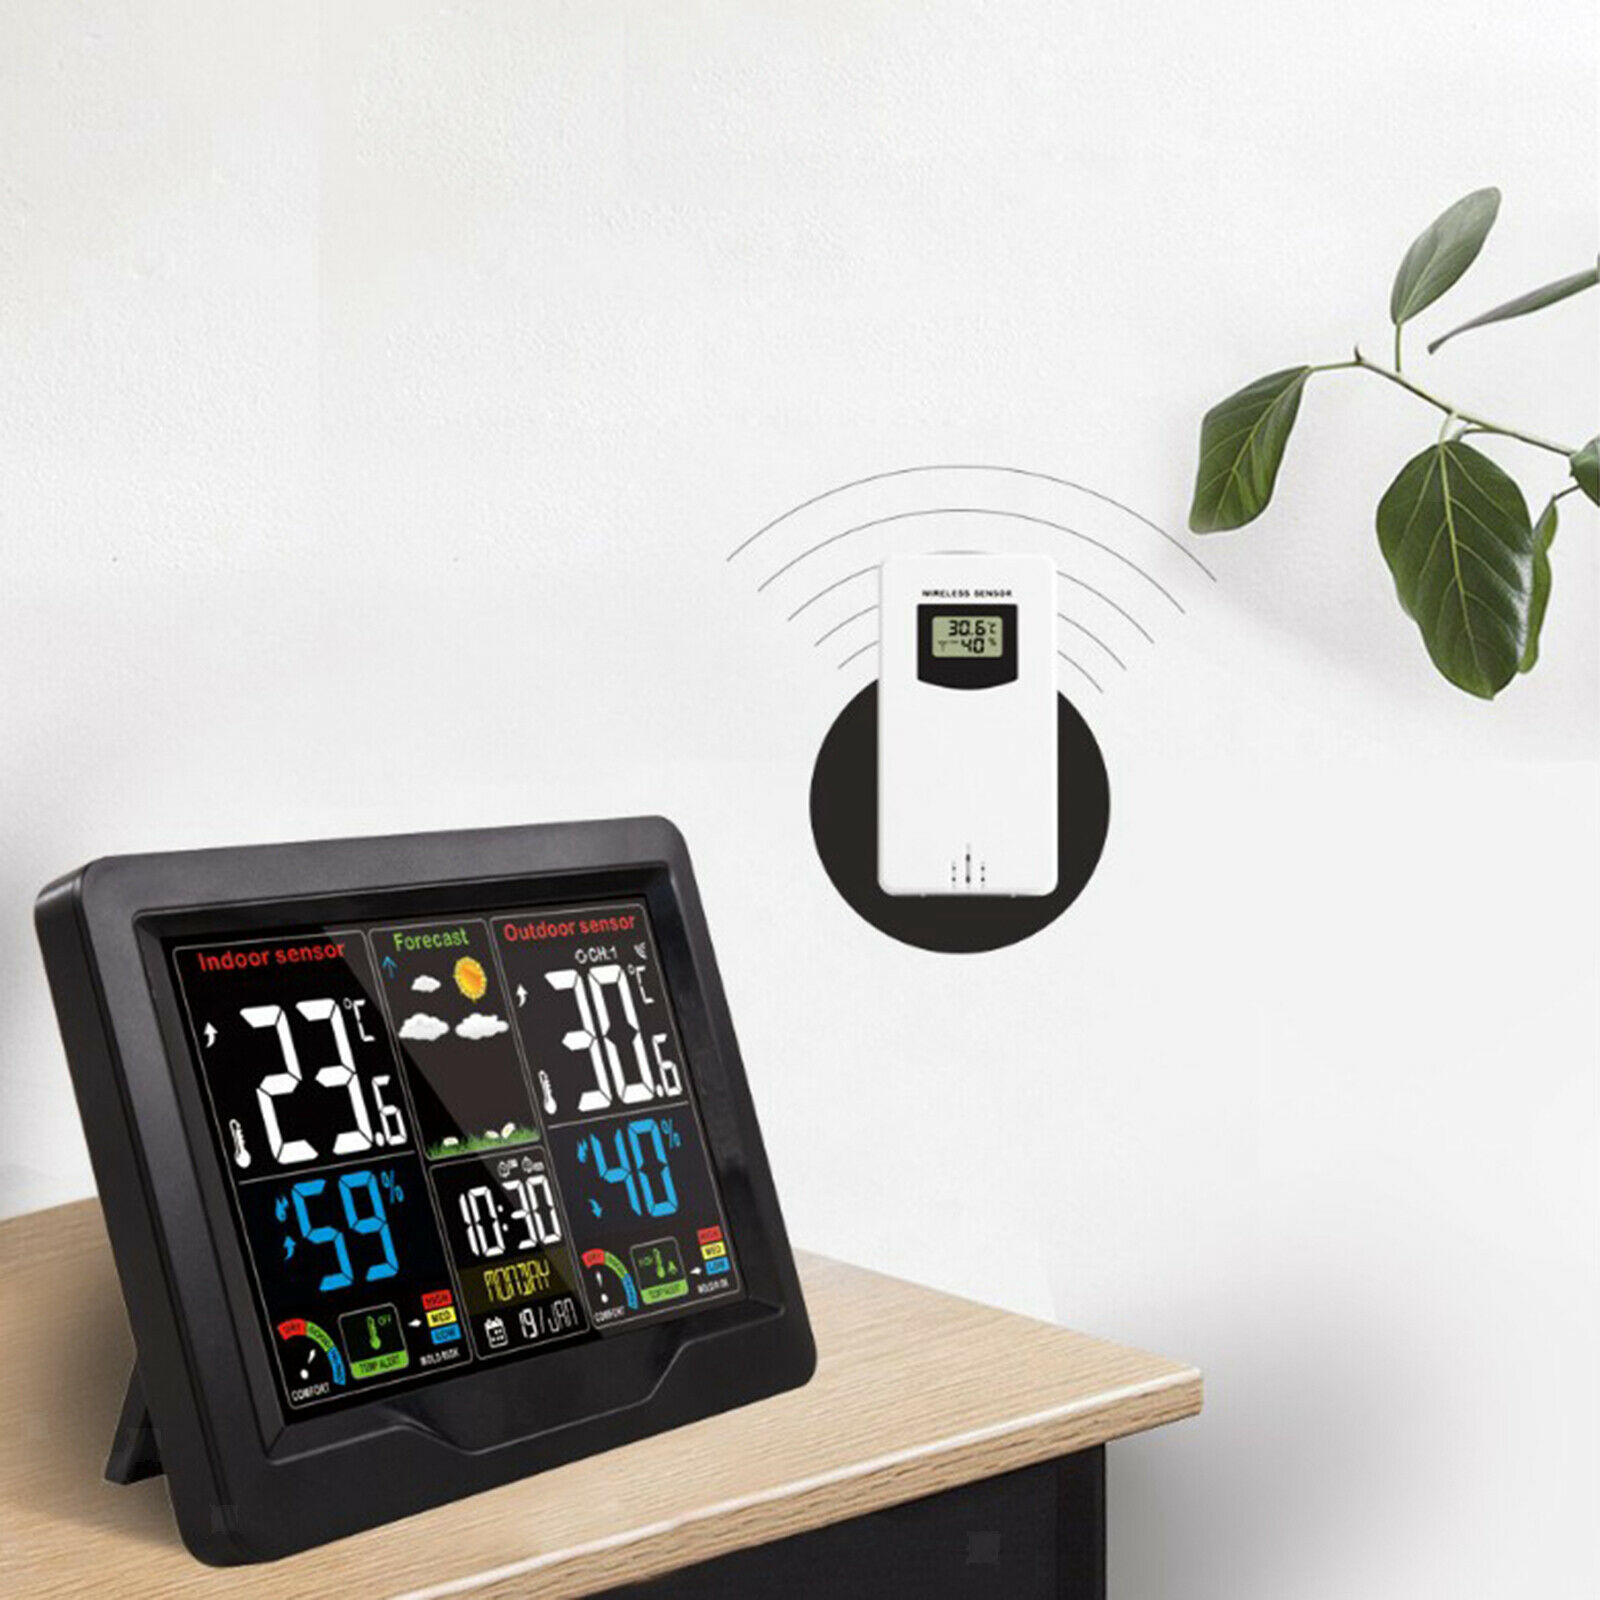 Wireless Weather Station LCD Display Indoor / Outdoor Temperature Humidity